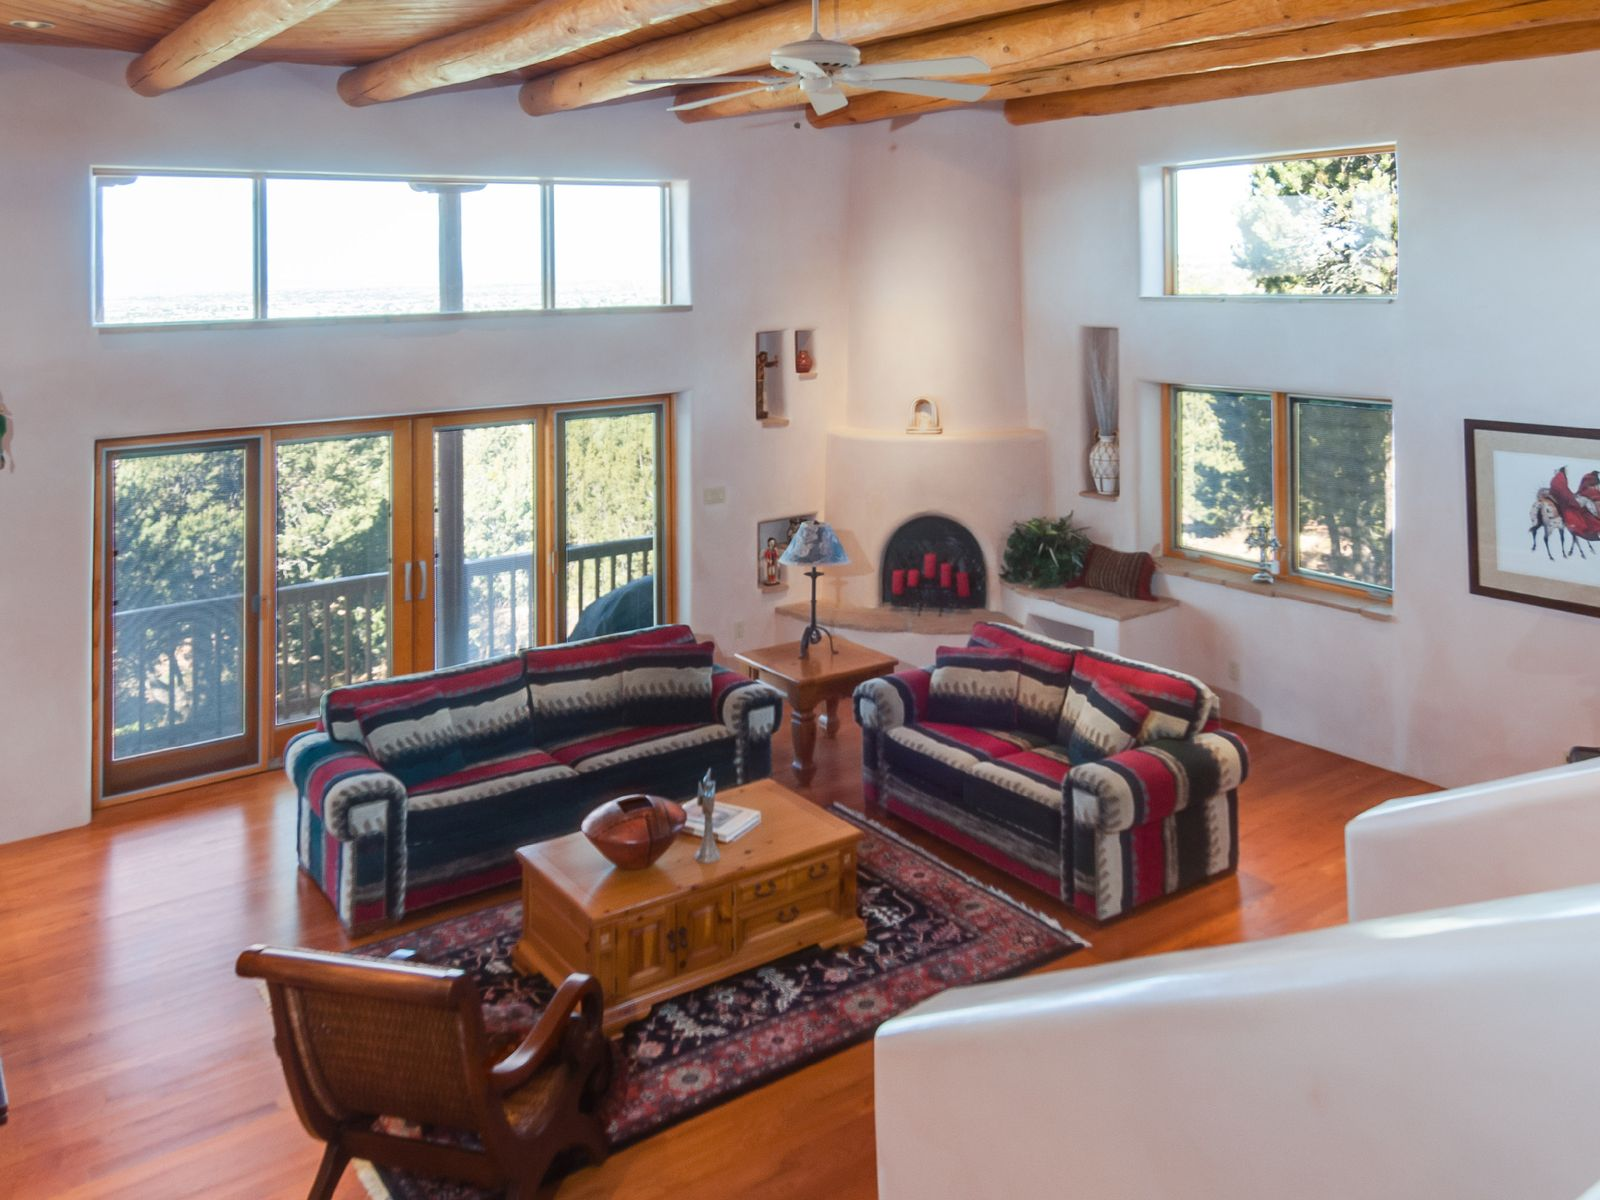 10 Camino Monte Feliz, Santa Fe NM Single Family Home - Santa Fe Real Estate